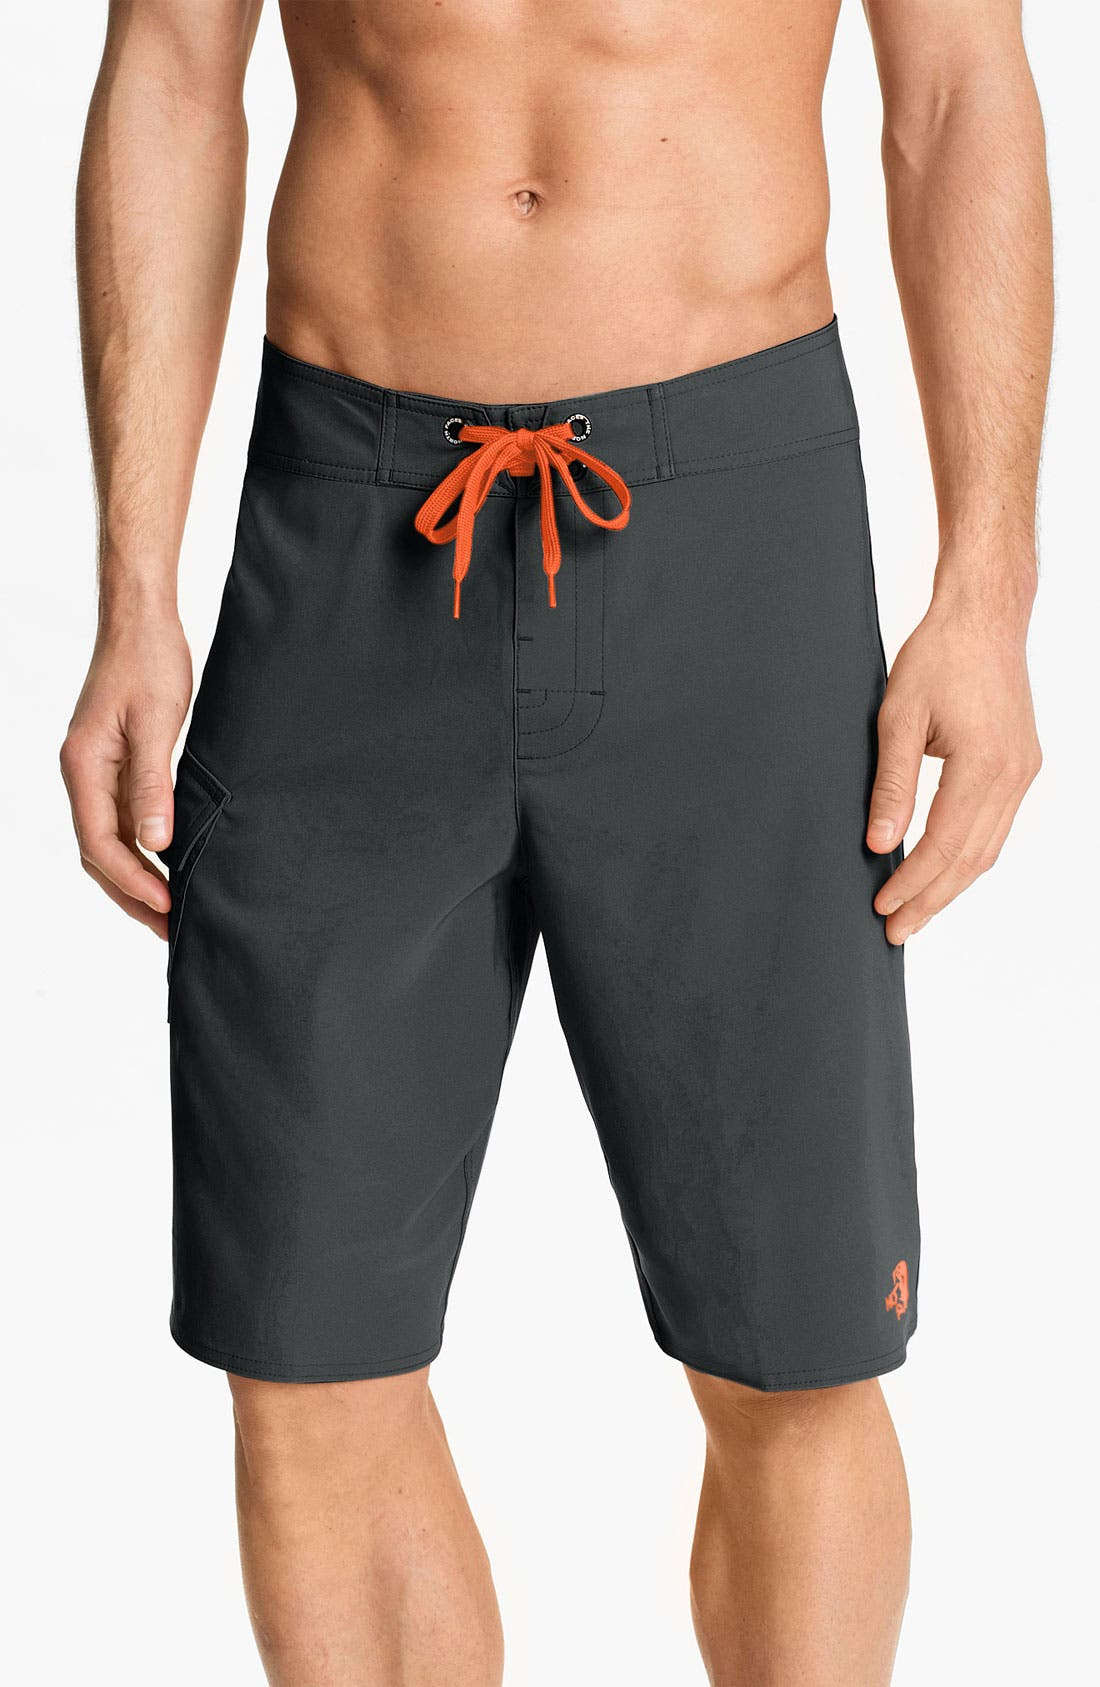 Alternate Image 1 Selected - The North Face 'Hodad' Board Shorts